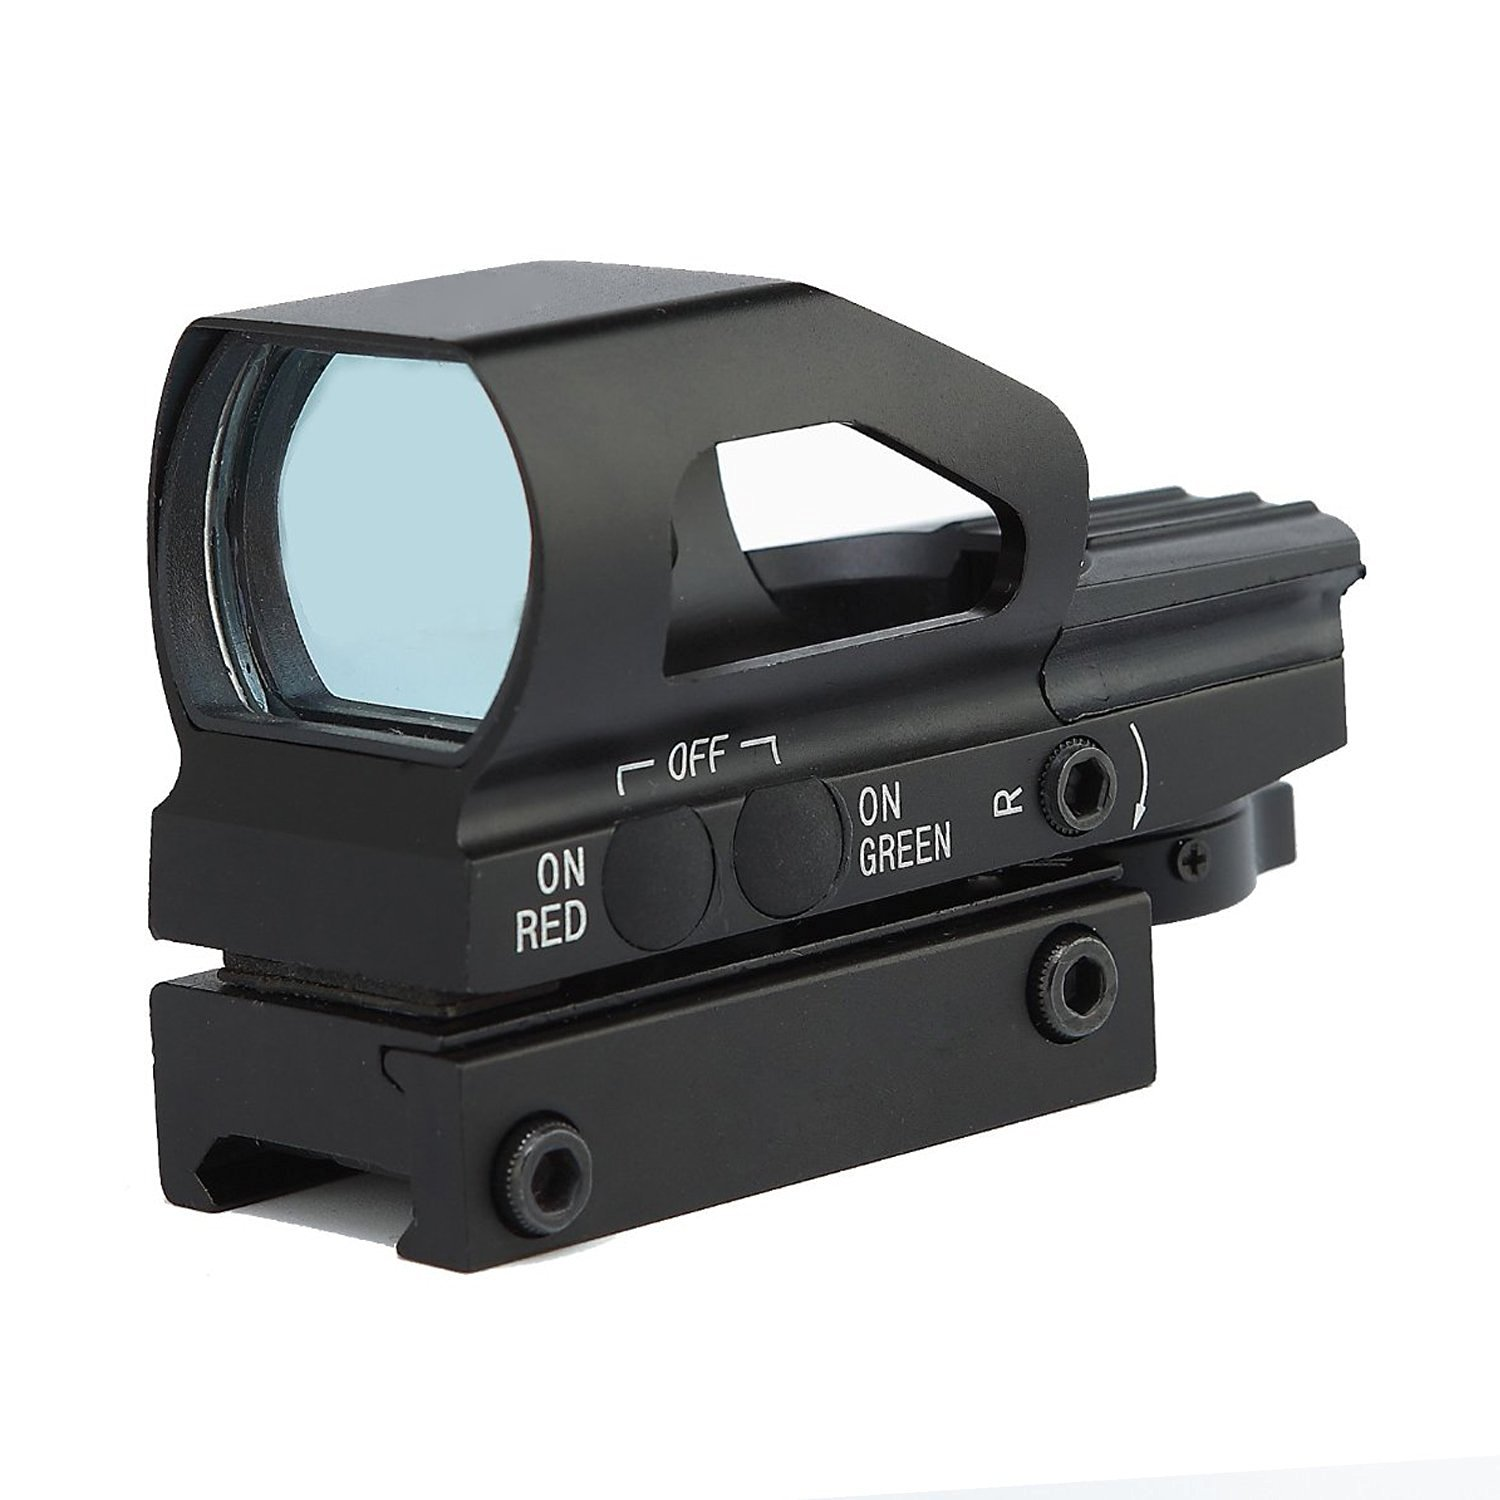 Rifle scope/Gun scope/Gun sights/Starter Packs/Scope Sight Red Dot Reflex sight- Reflex sight optic and substitute for holographic red dot sights